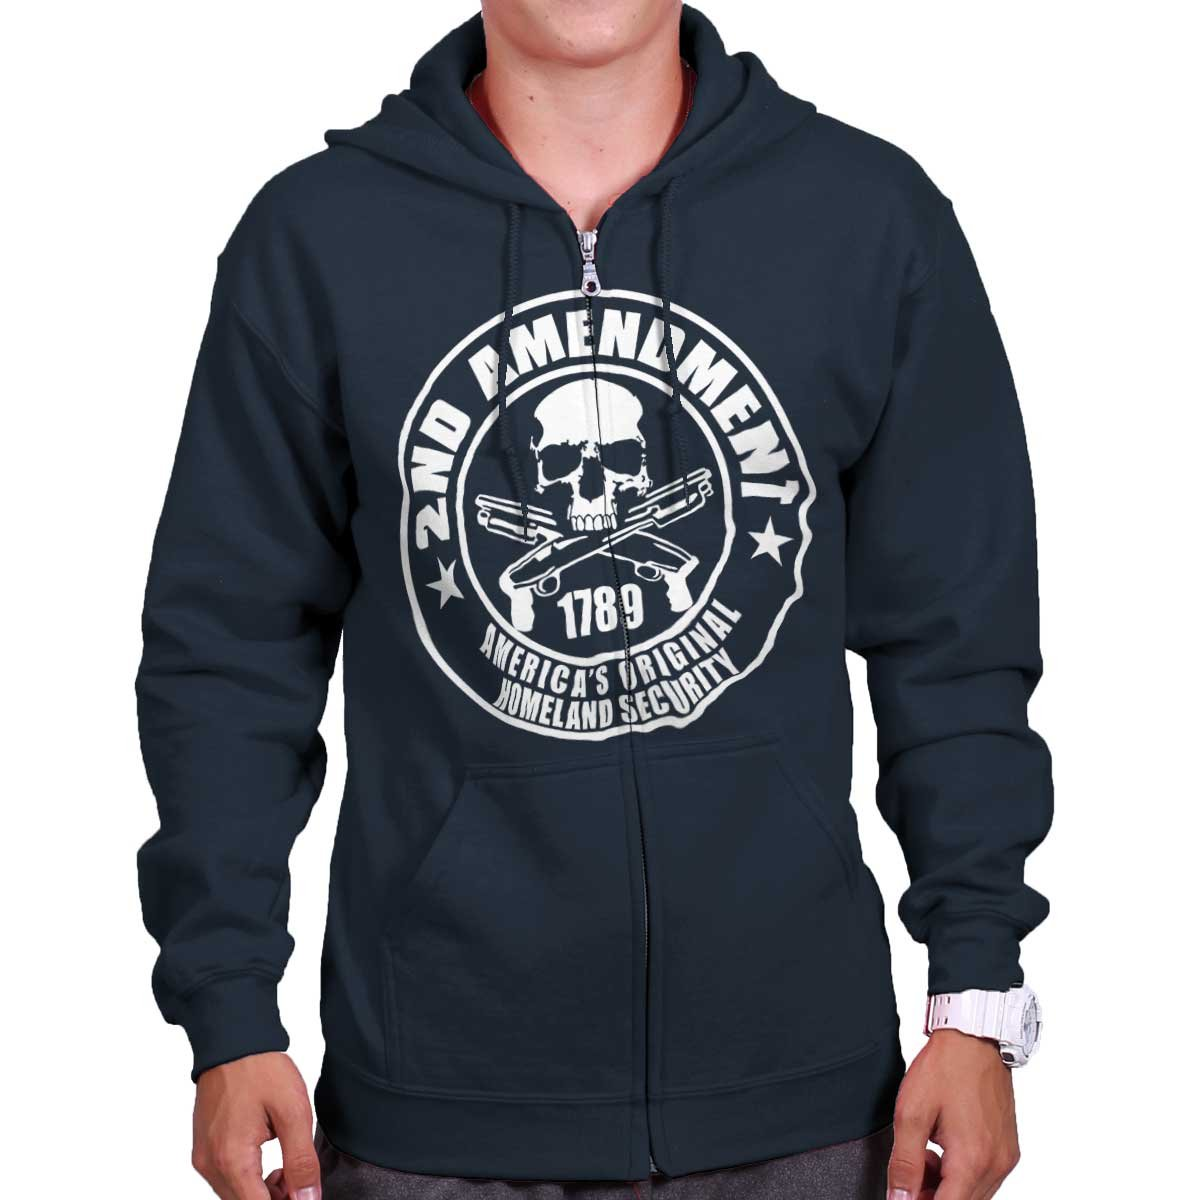 Amazon.com  Brisco Brands 2nd Amendment Americas Homeland Security Zip  Hoodie  Clothing 97d7f5159